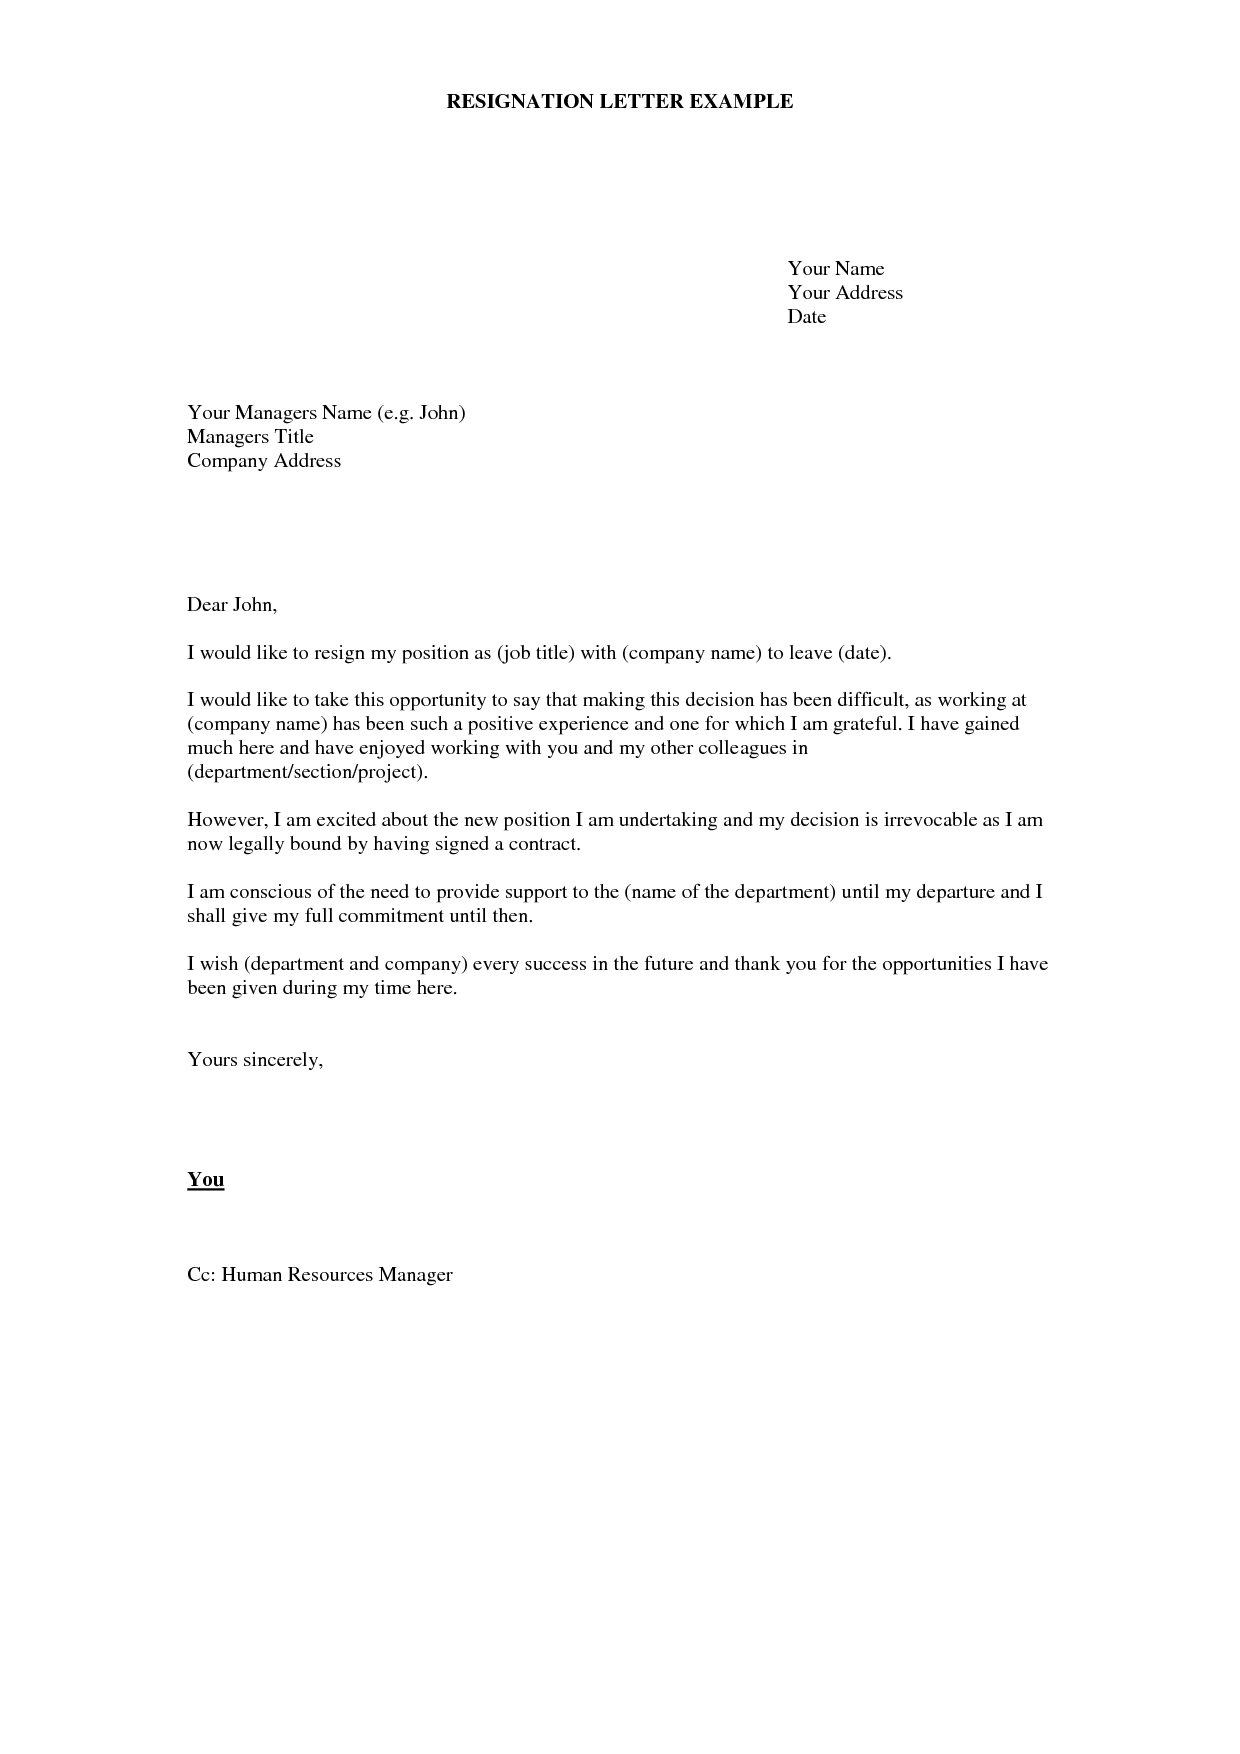 resigning format resignation examples sample resignation letter – Letters to Resign